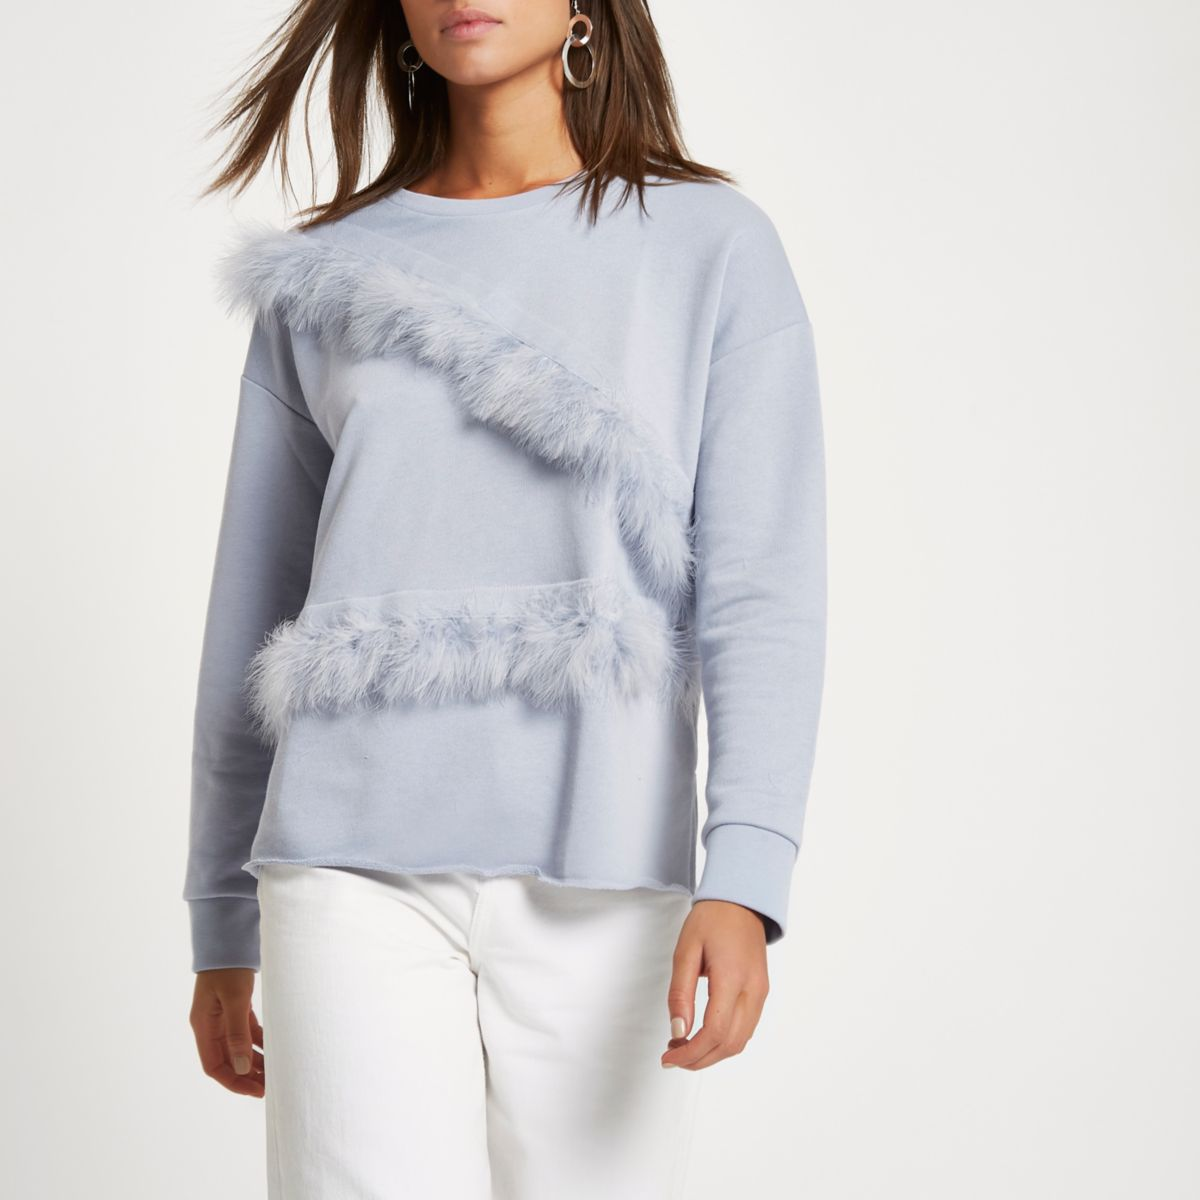 Grey feather trim sweatshirt